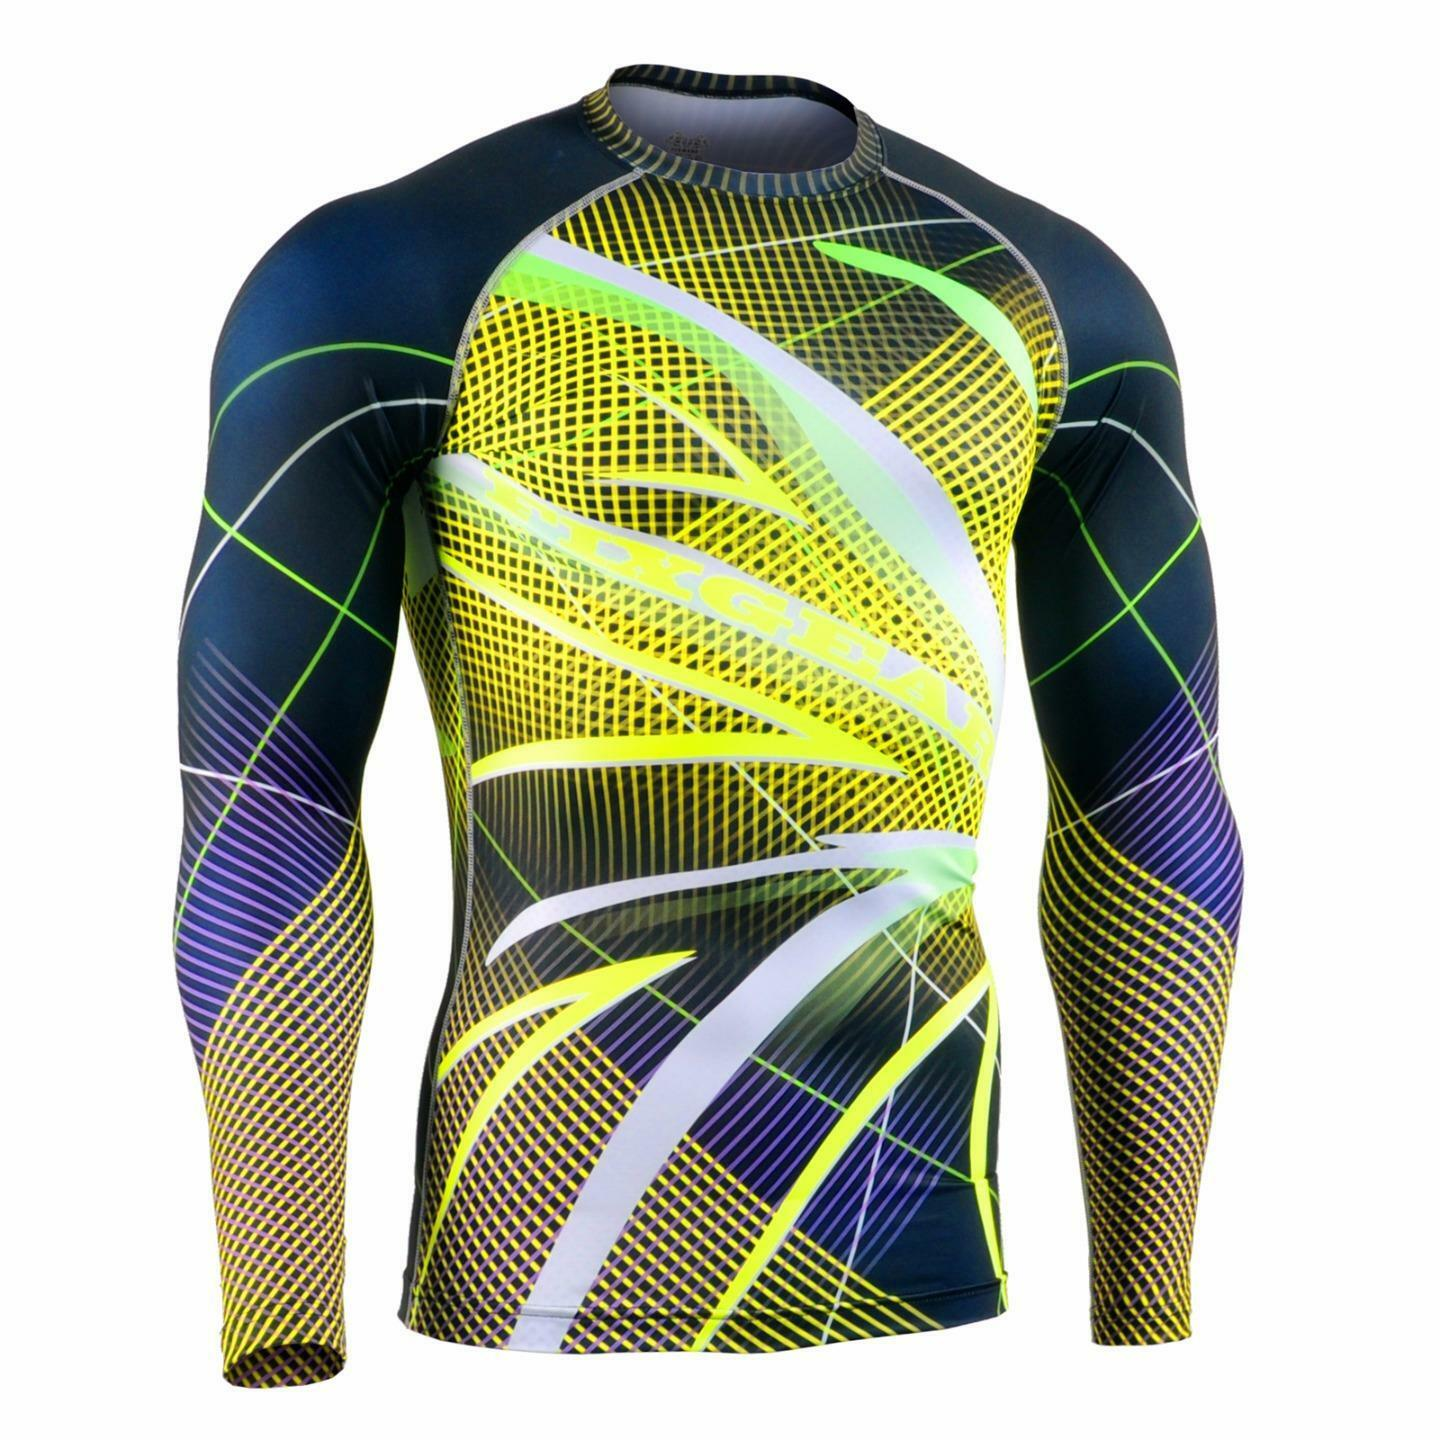 FIXGEAR CFL-F71 Compression Base Layer Shirt Sportswear Bodybuilding Workout GYM